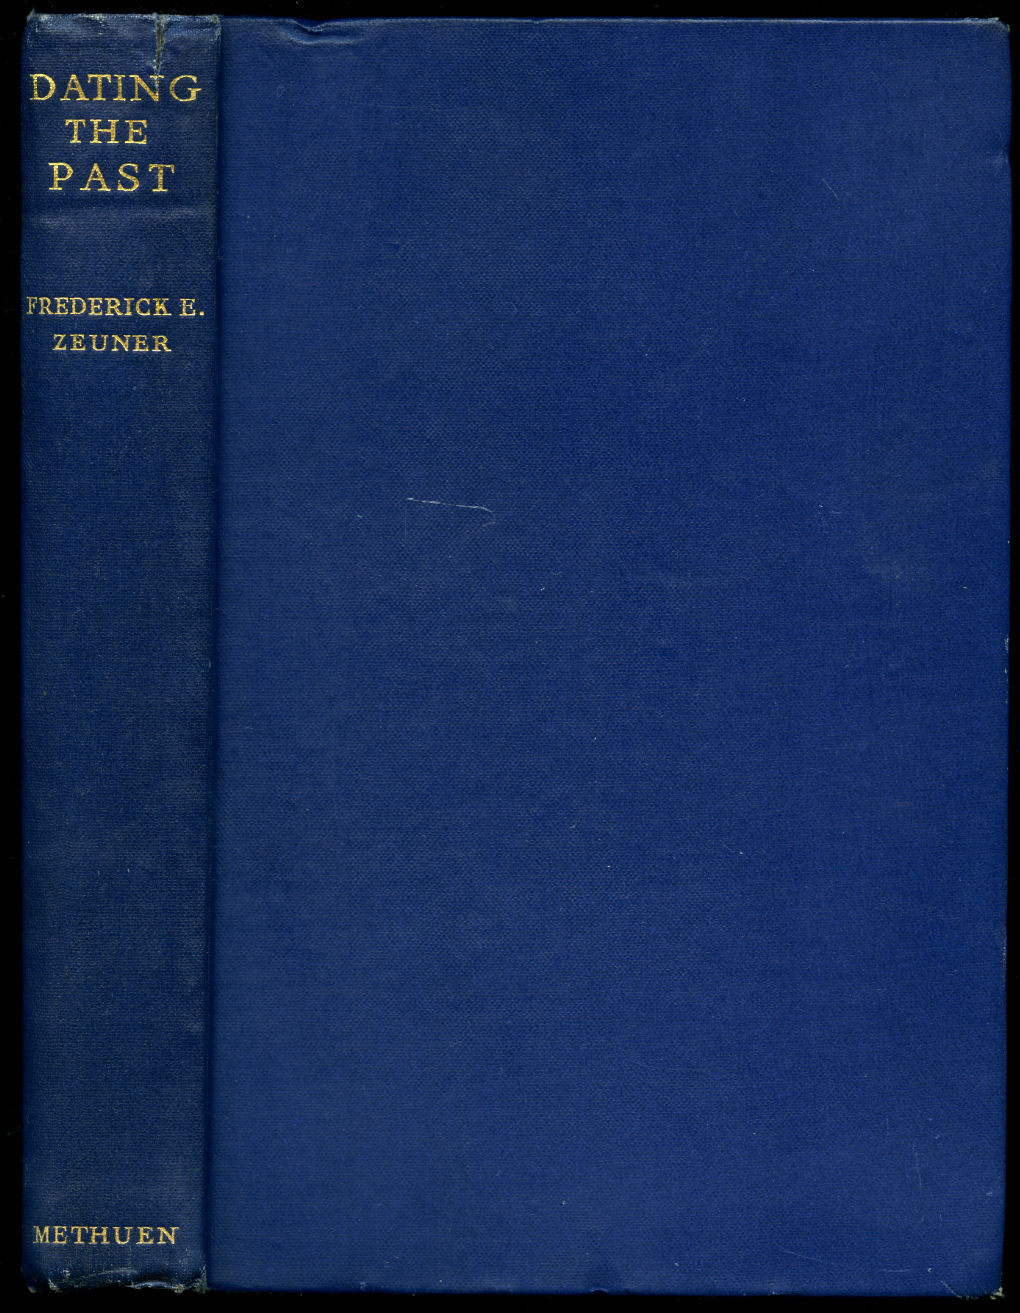 ZEUNER, FREDERICK E. - Dating the Past   An Introduction to Geochronology